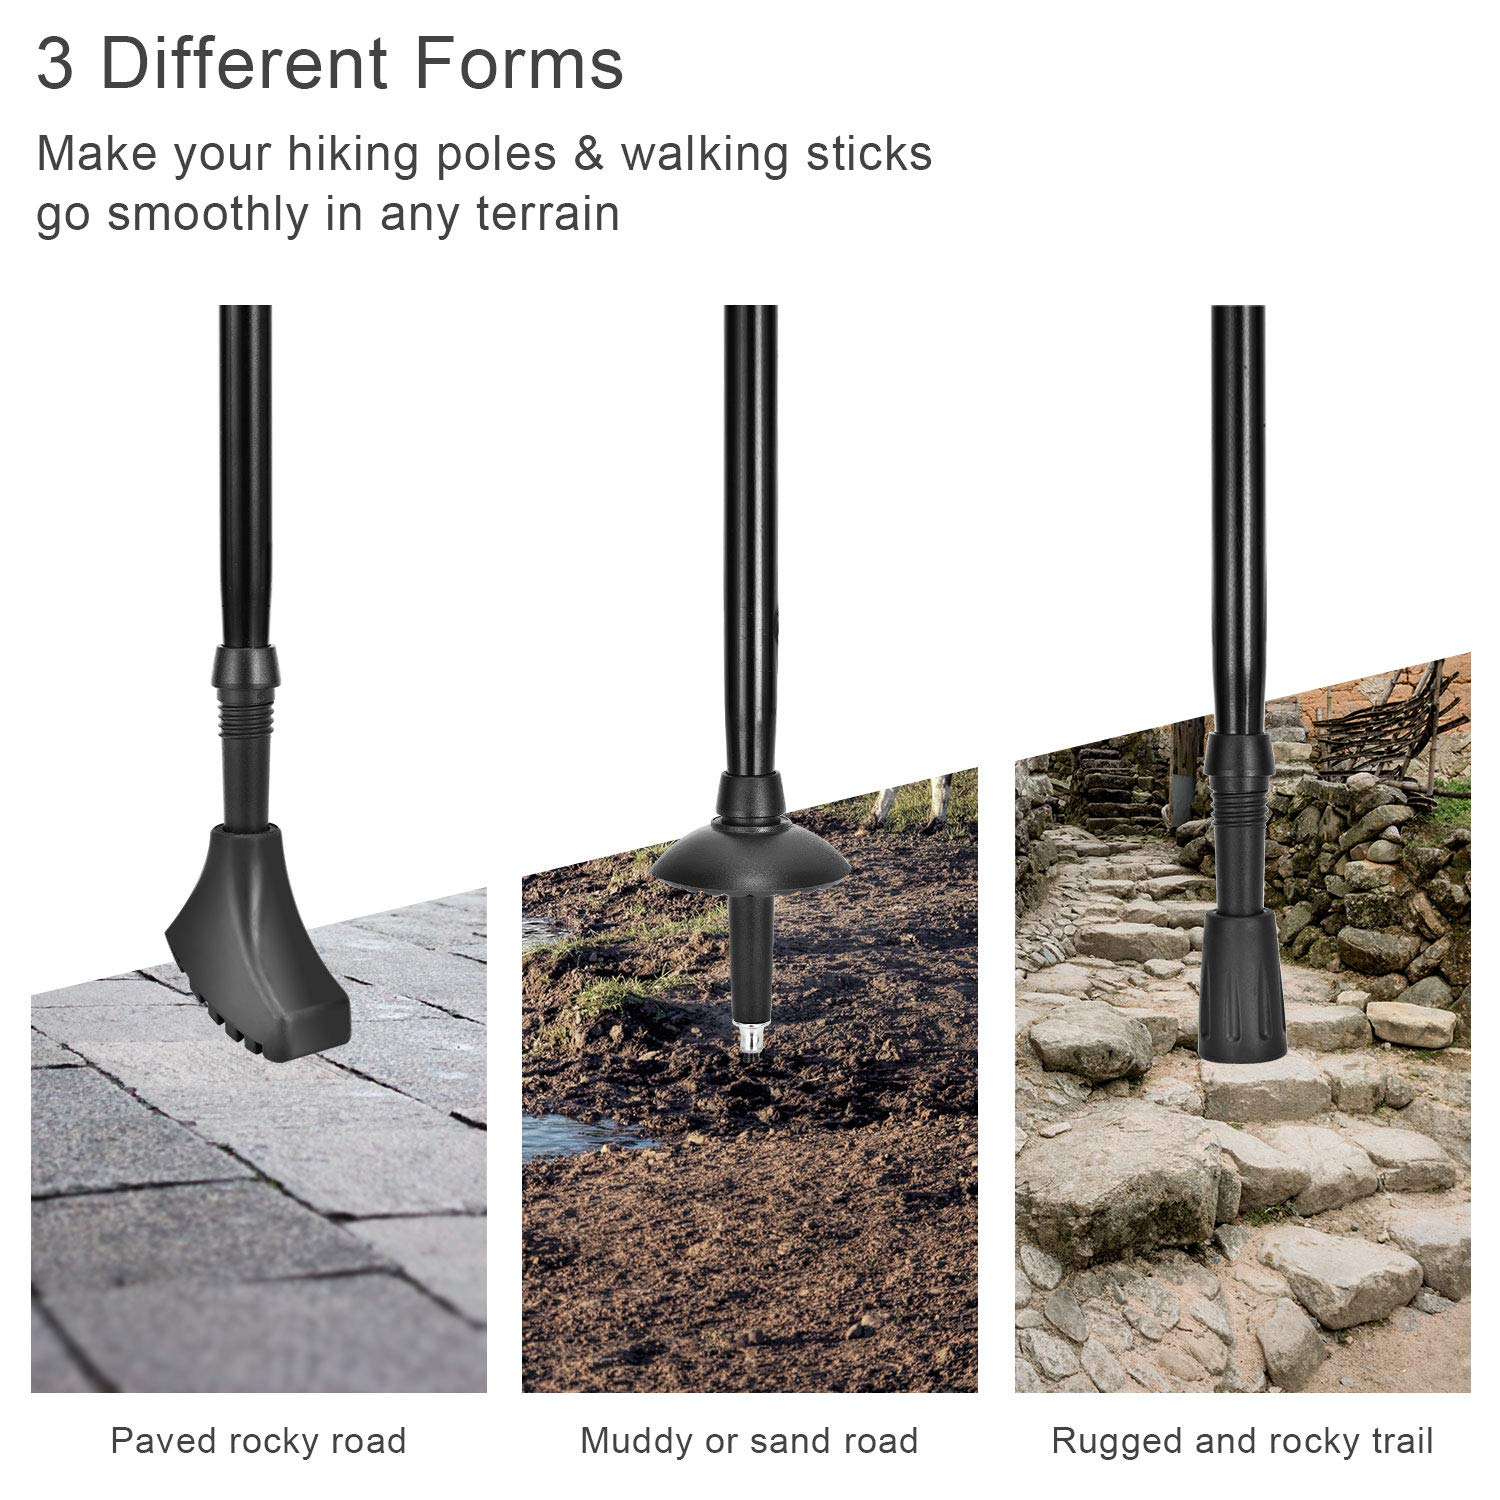 OTraki Hiking Walking Stick Rubber Tips 10 Pack Nordic Walking Pads Replacement Feet//Ferrules//Caps 3 Different Forms Alpenstock Head Cover Rubber Ends for Asphalt Rock and Snow Mud Ground